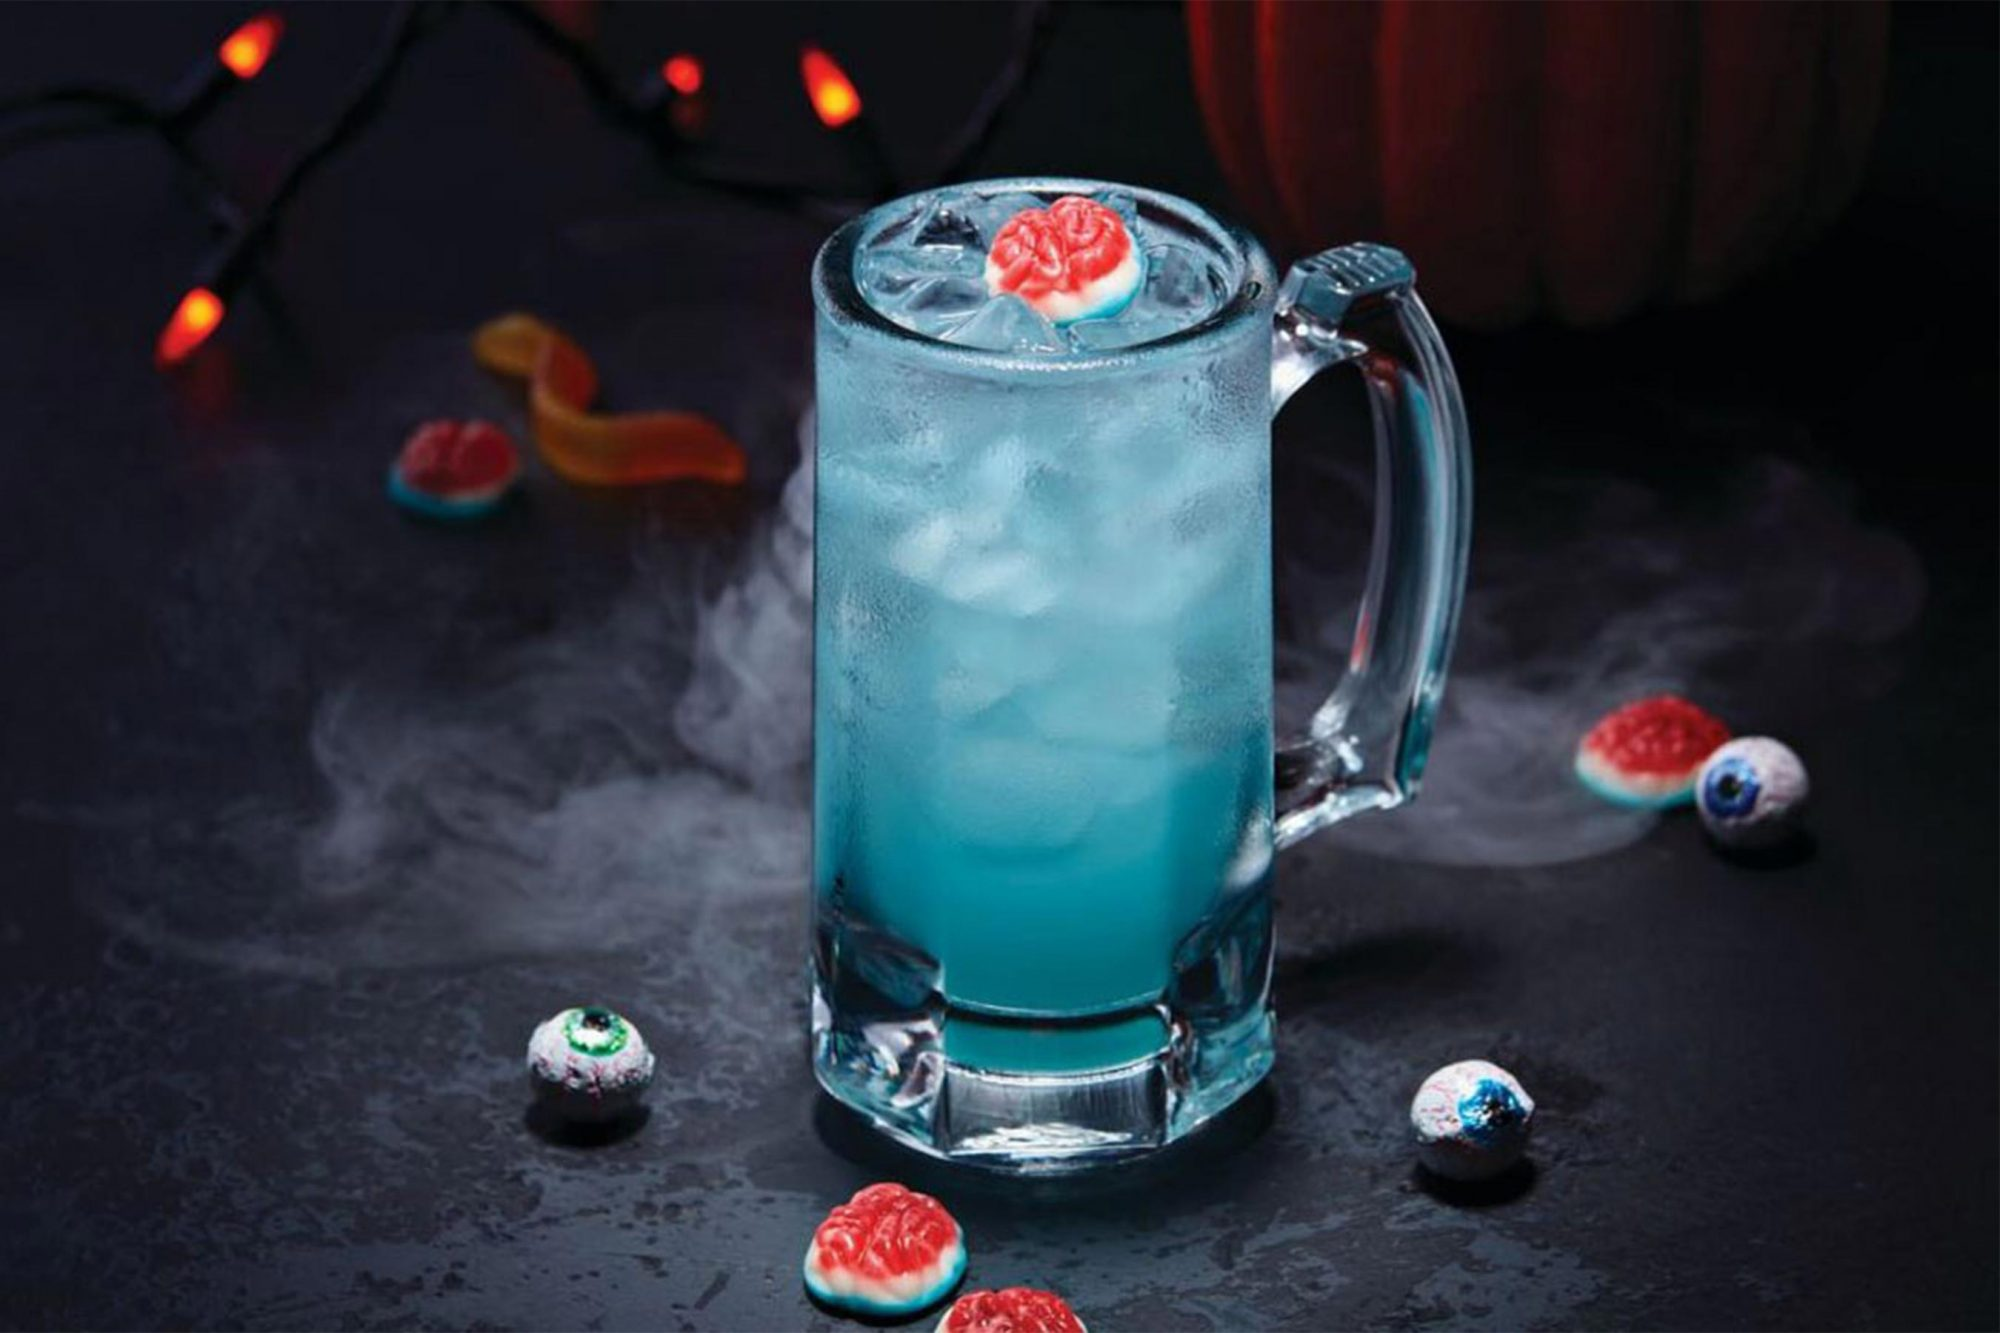 Applebee's Is Selling $1 Zombie Cocktails Through the End of October